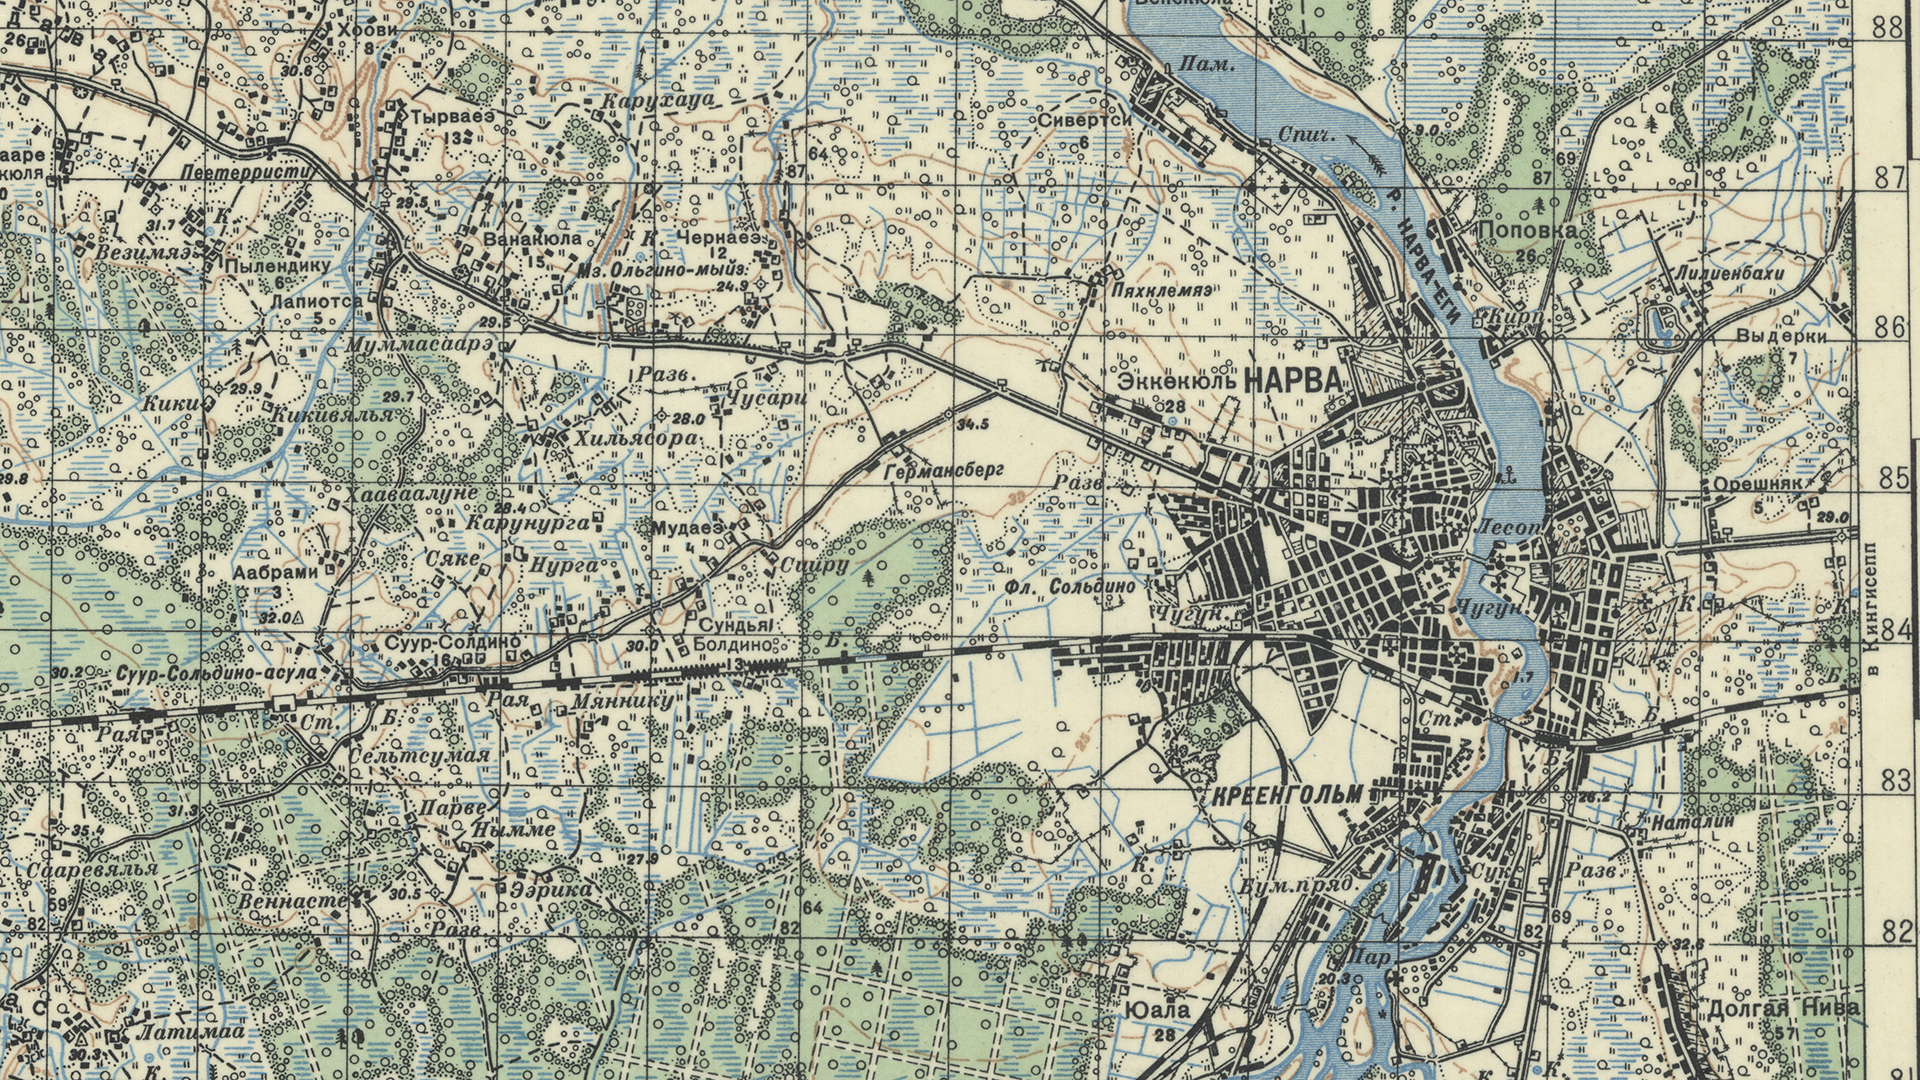 Digitizing Captured Russian Military Maps Indiana University Libraries